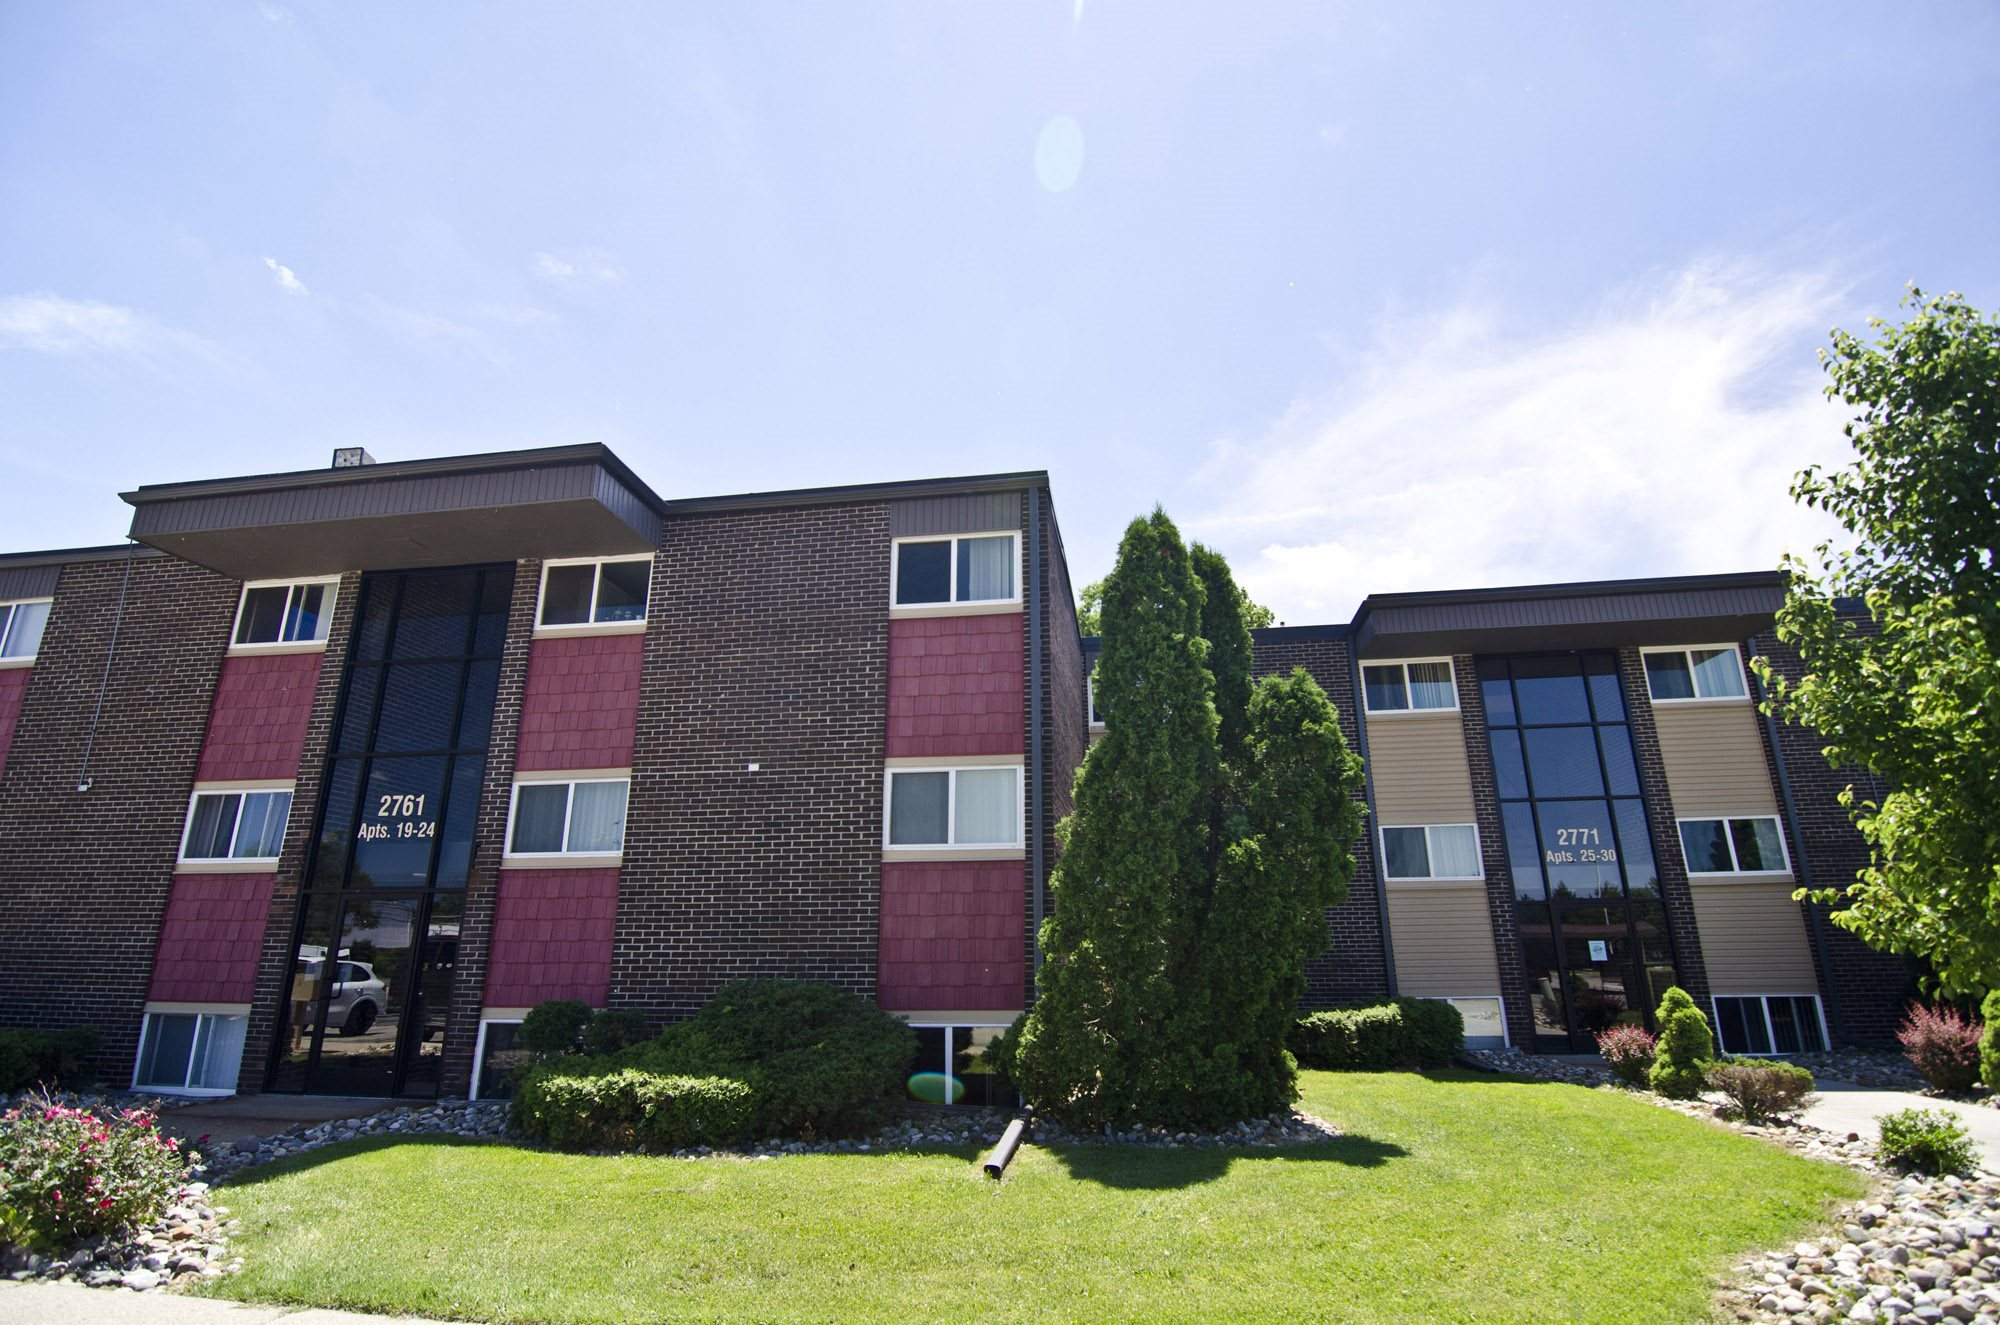 Collingwood apartments apartments in east lansing mi - 3 bedroom apartments east lansing mi ...